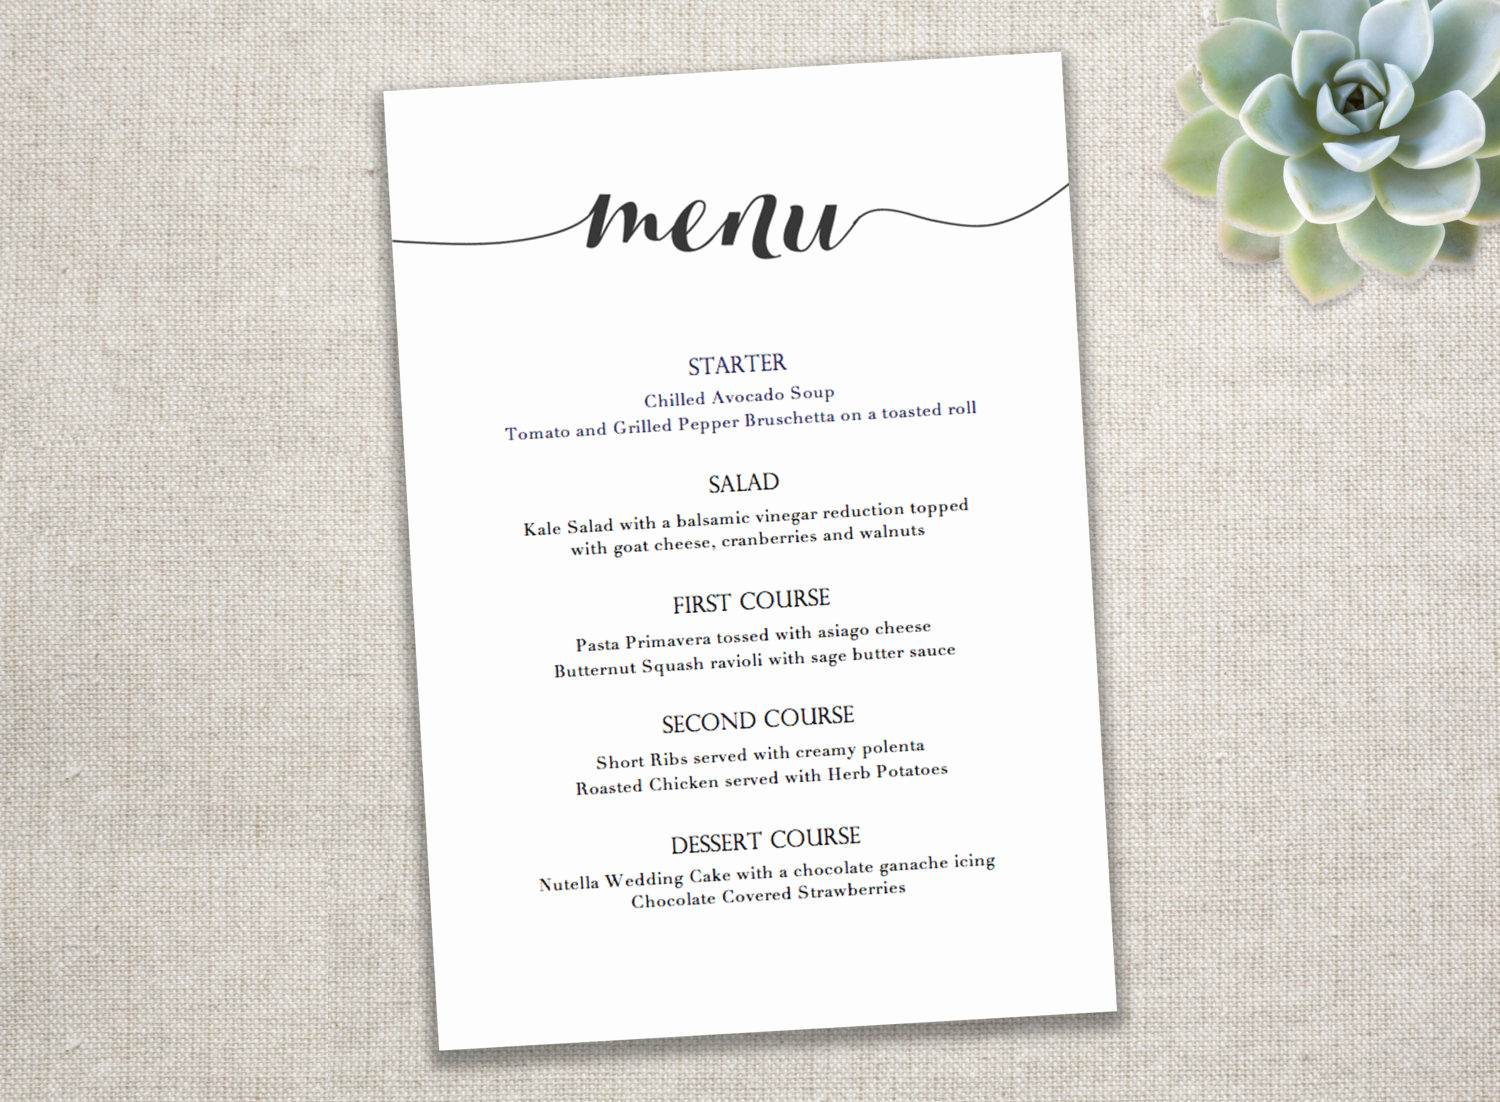 Dinner Menu Template Free Inspirational 10 event Menu Designs